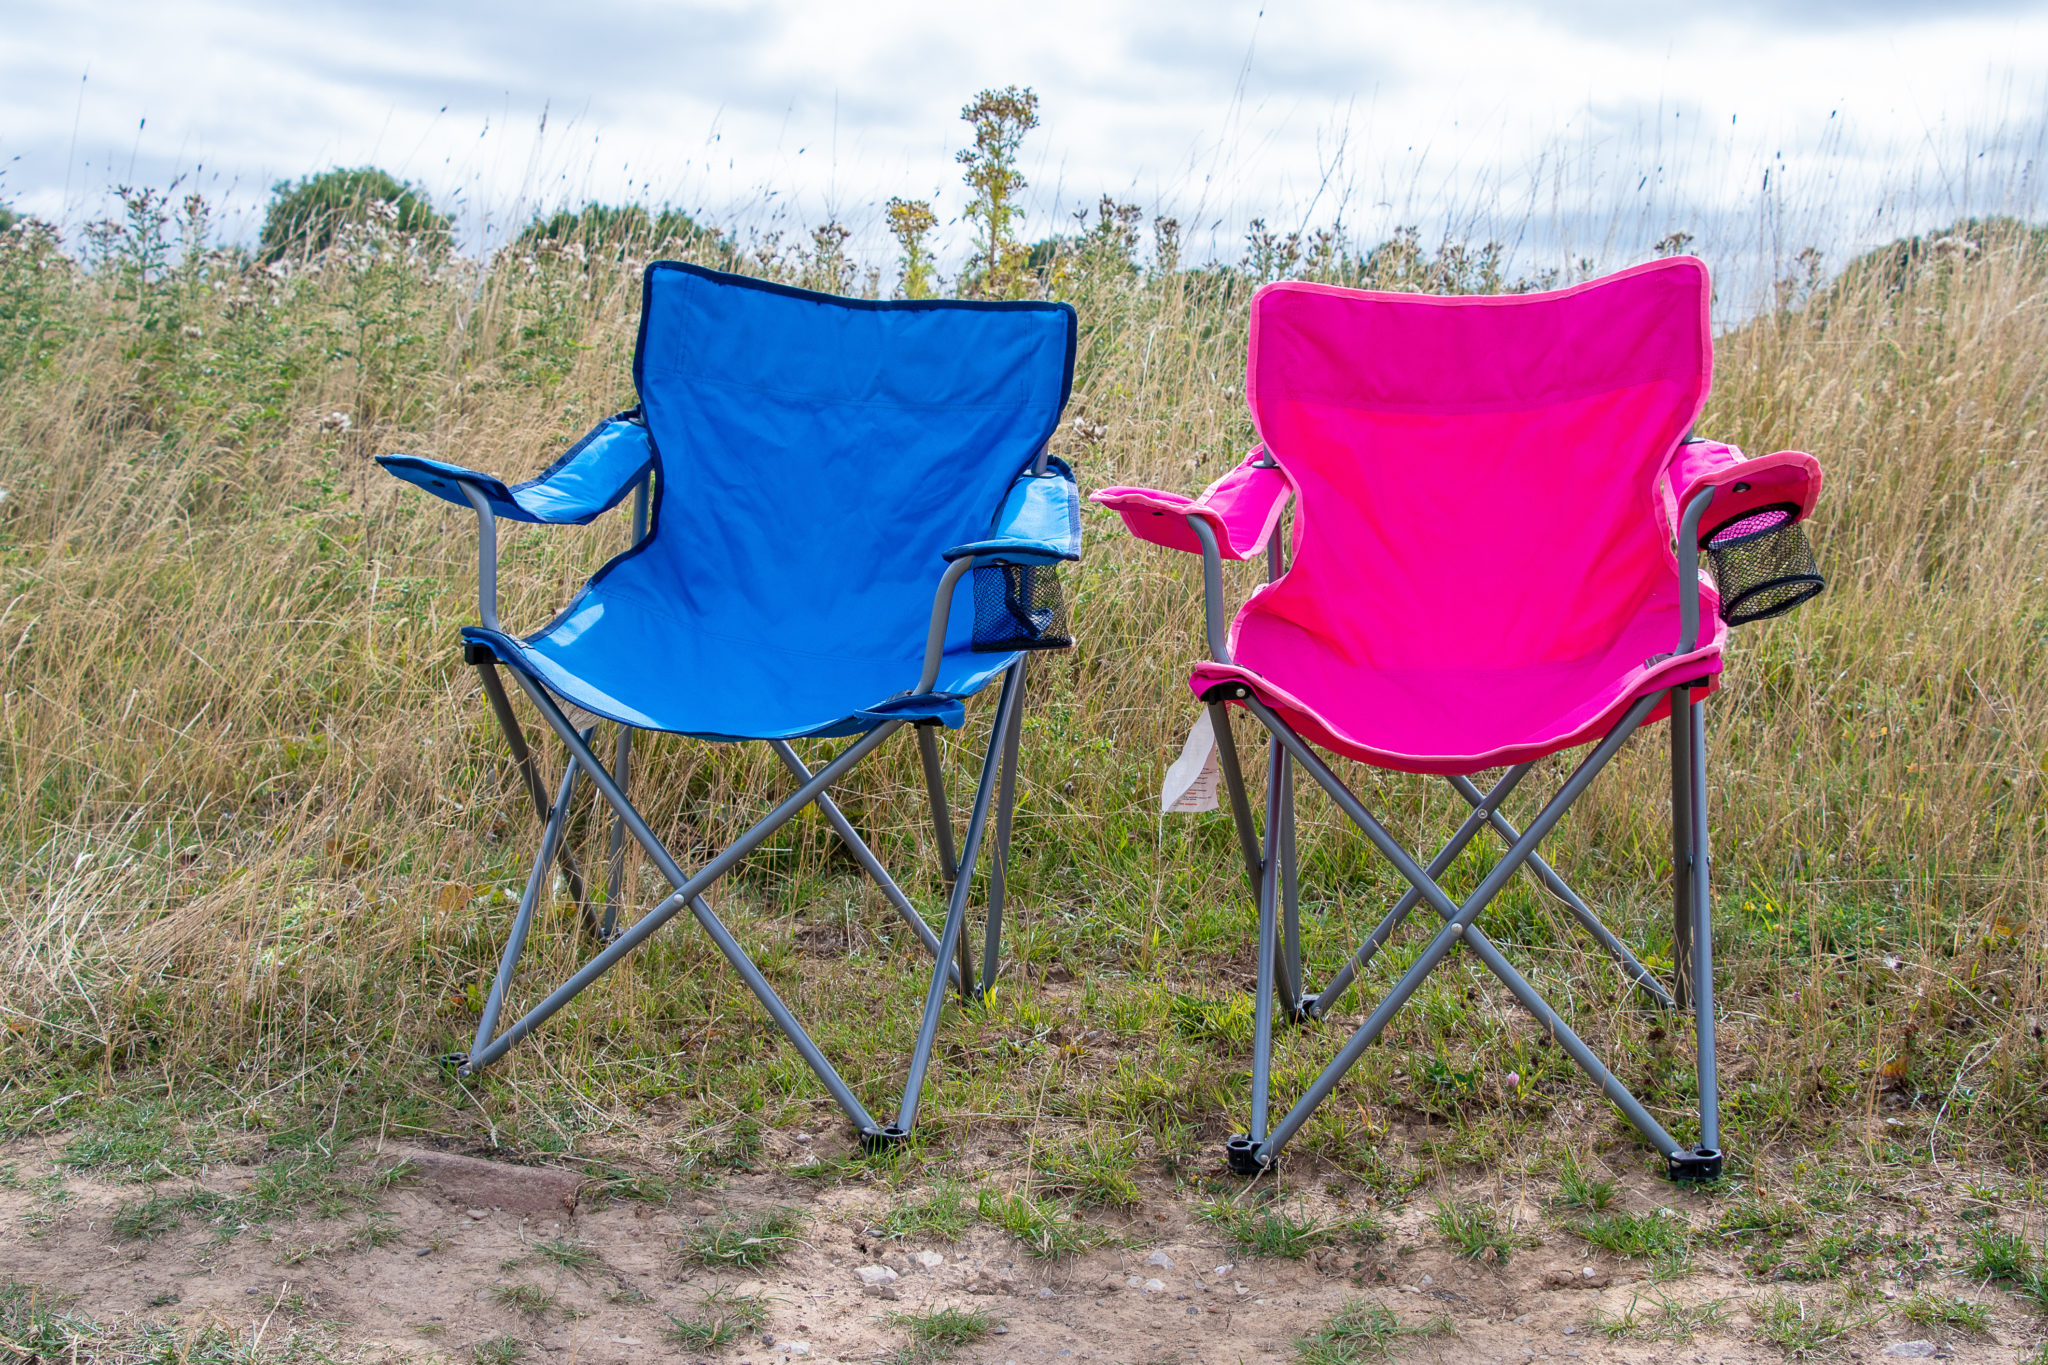 Caravan Sportsbeige Zero Gravity Chairs Inside Preferred Best Camping Chair For Bad Back (review & Buying Guide) (View 17 of 25)